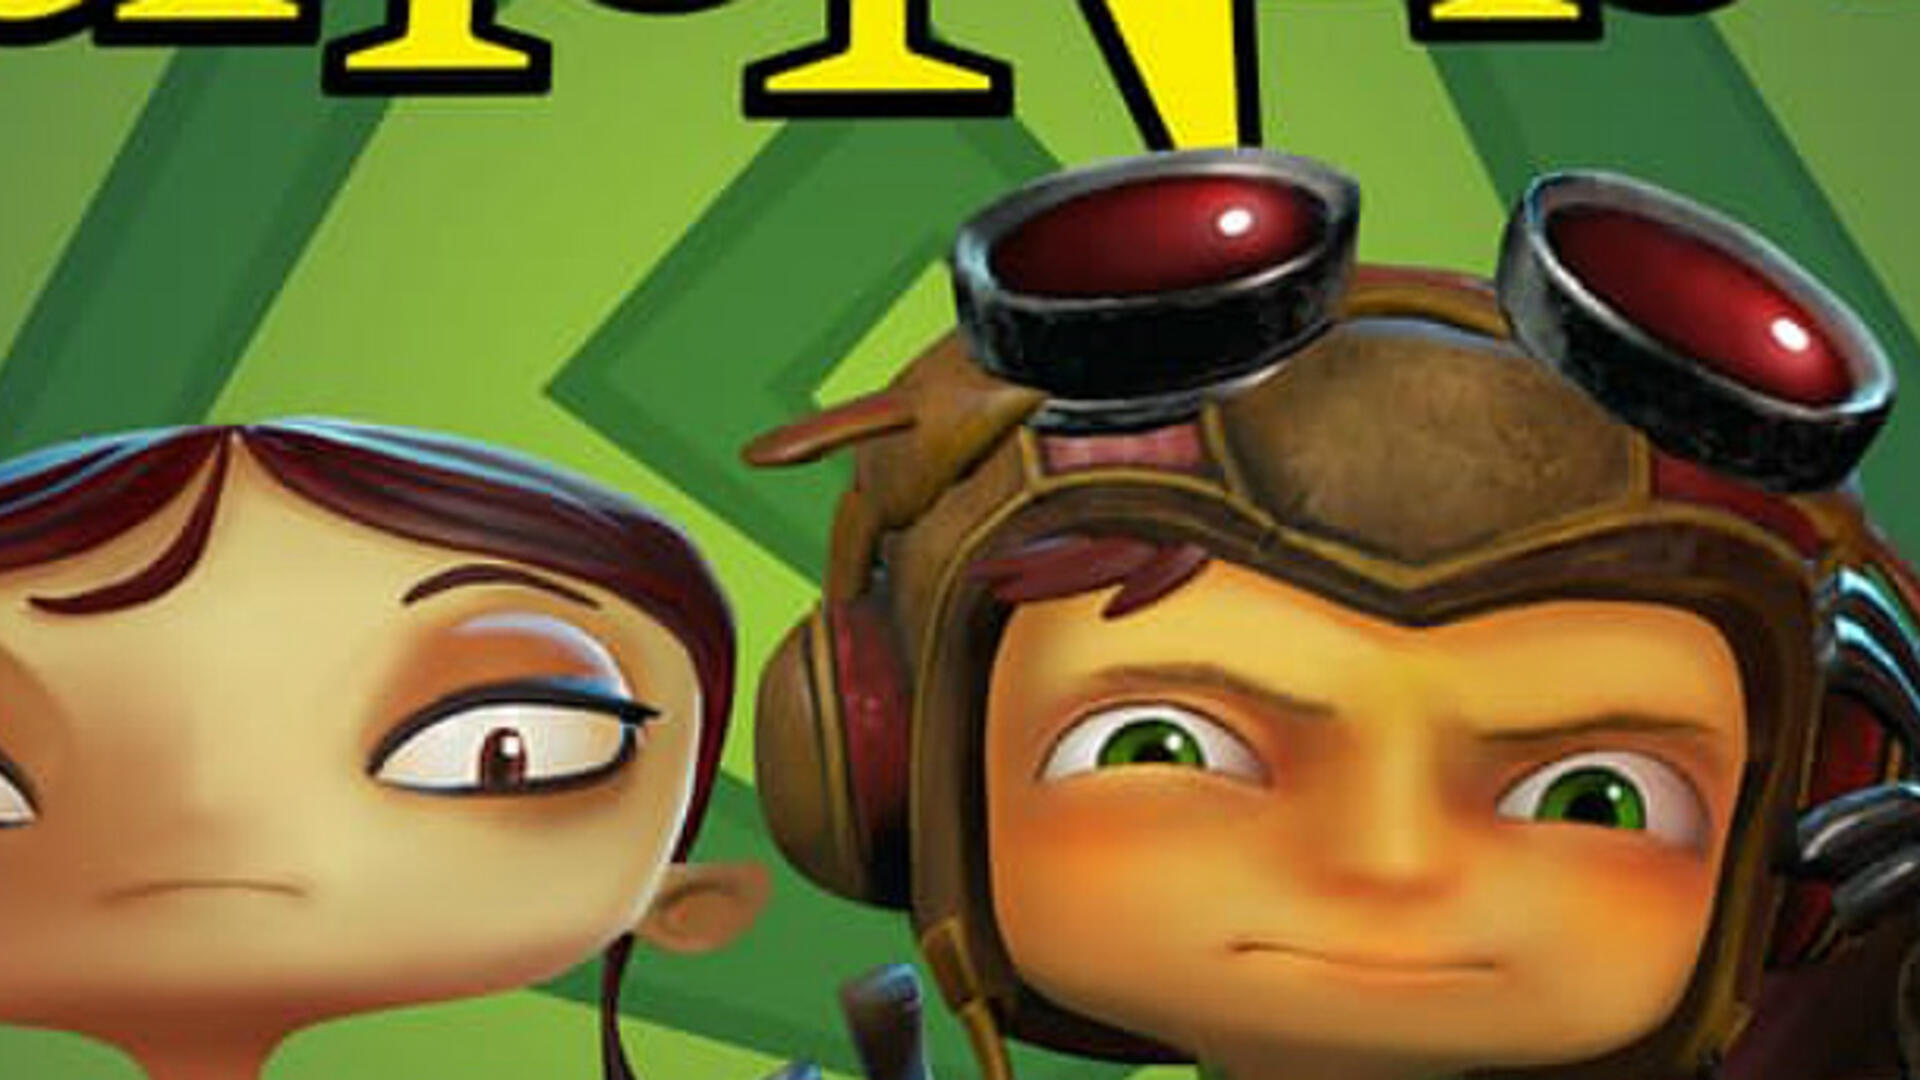 Psychonauts 2 Will Be Published By Starbreeze in 2018